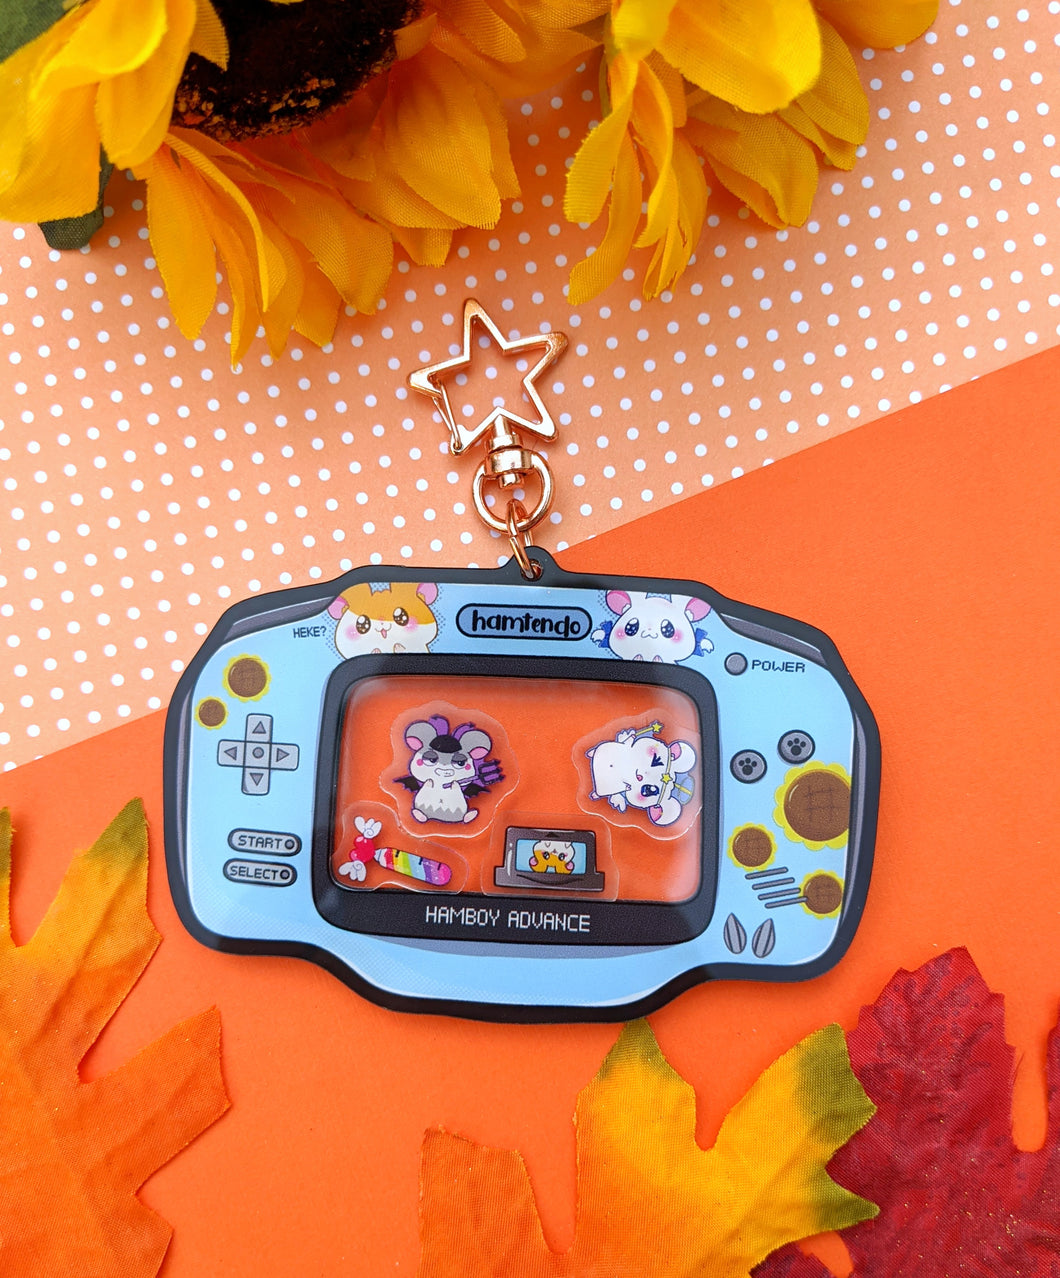 Hamtaro Heartbreak Shaker VER. 2